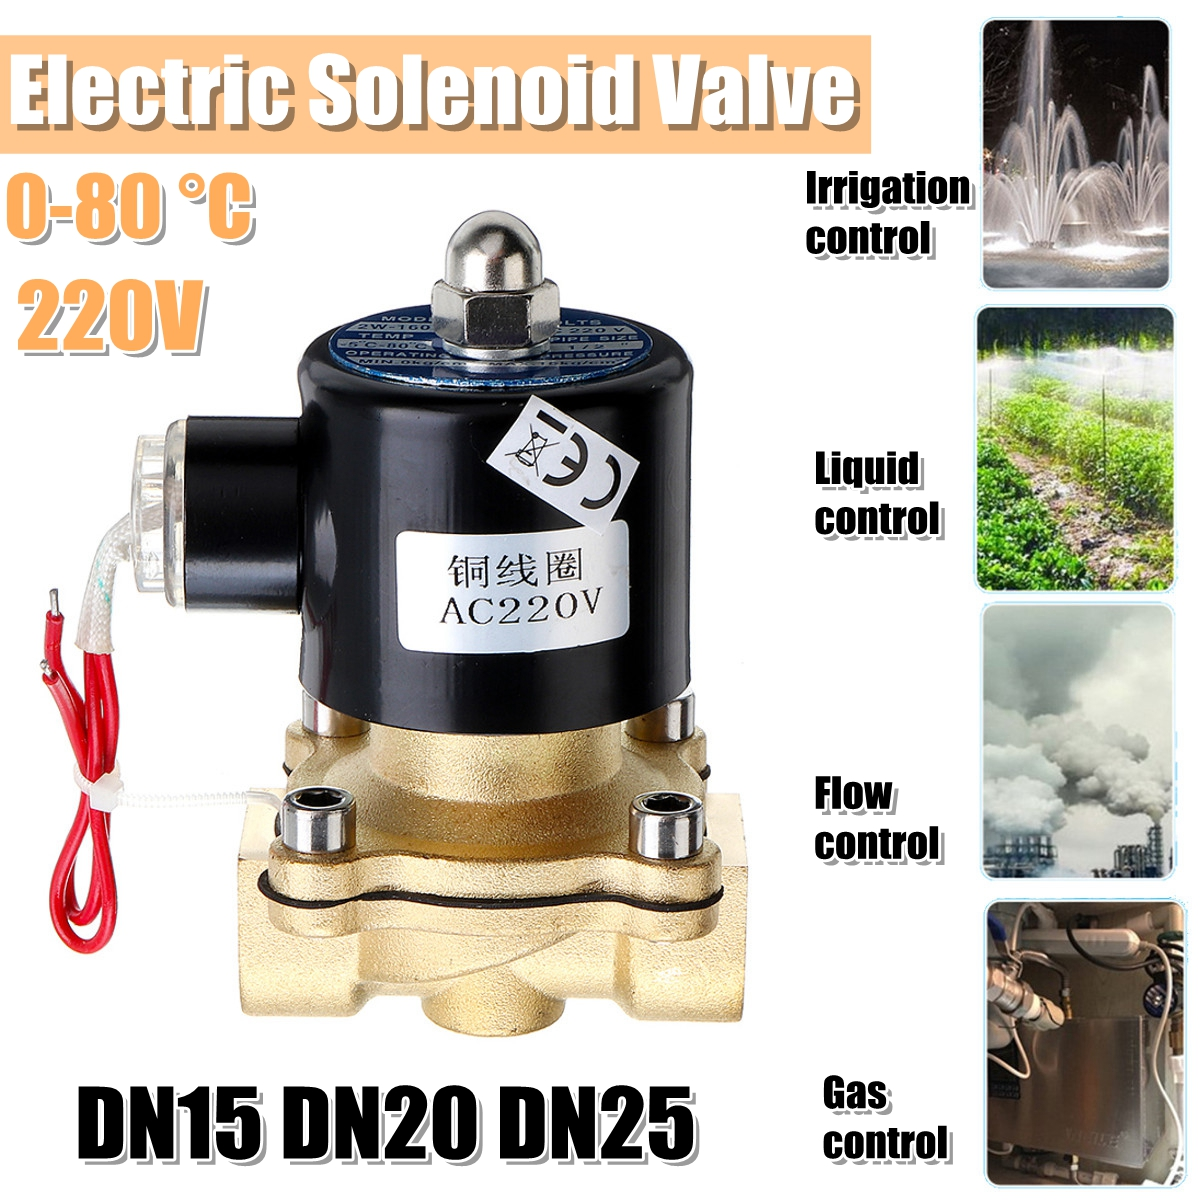 1/2 3/4 1 Inch 220V Electric Solenoid Valve Pneumatic Valve for Water Air Gas Brass Valve Air Valves DN15 DN20 DN25 smc type cxsm32 40 cxsm32 40 double cylinder double shaft cylinder double rod cylinder cxsm 32 40